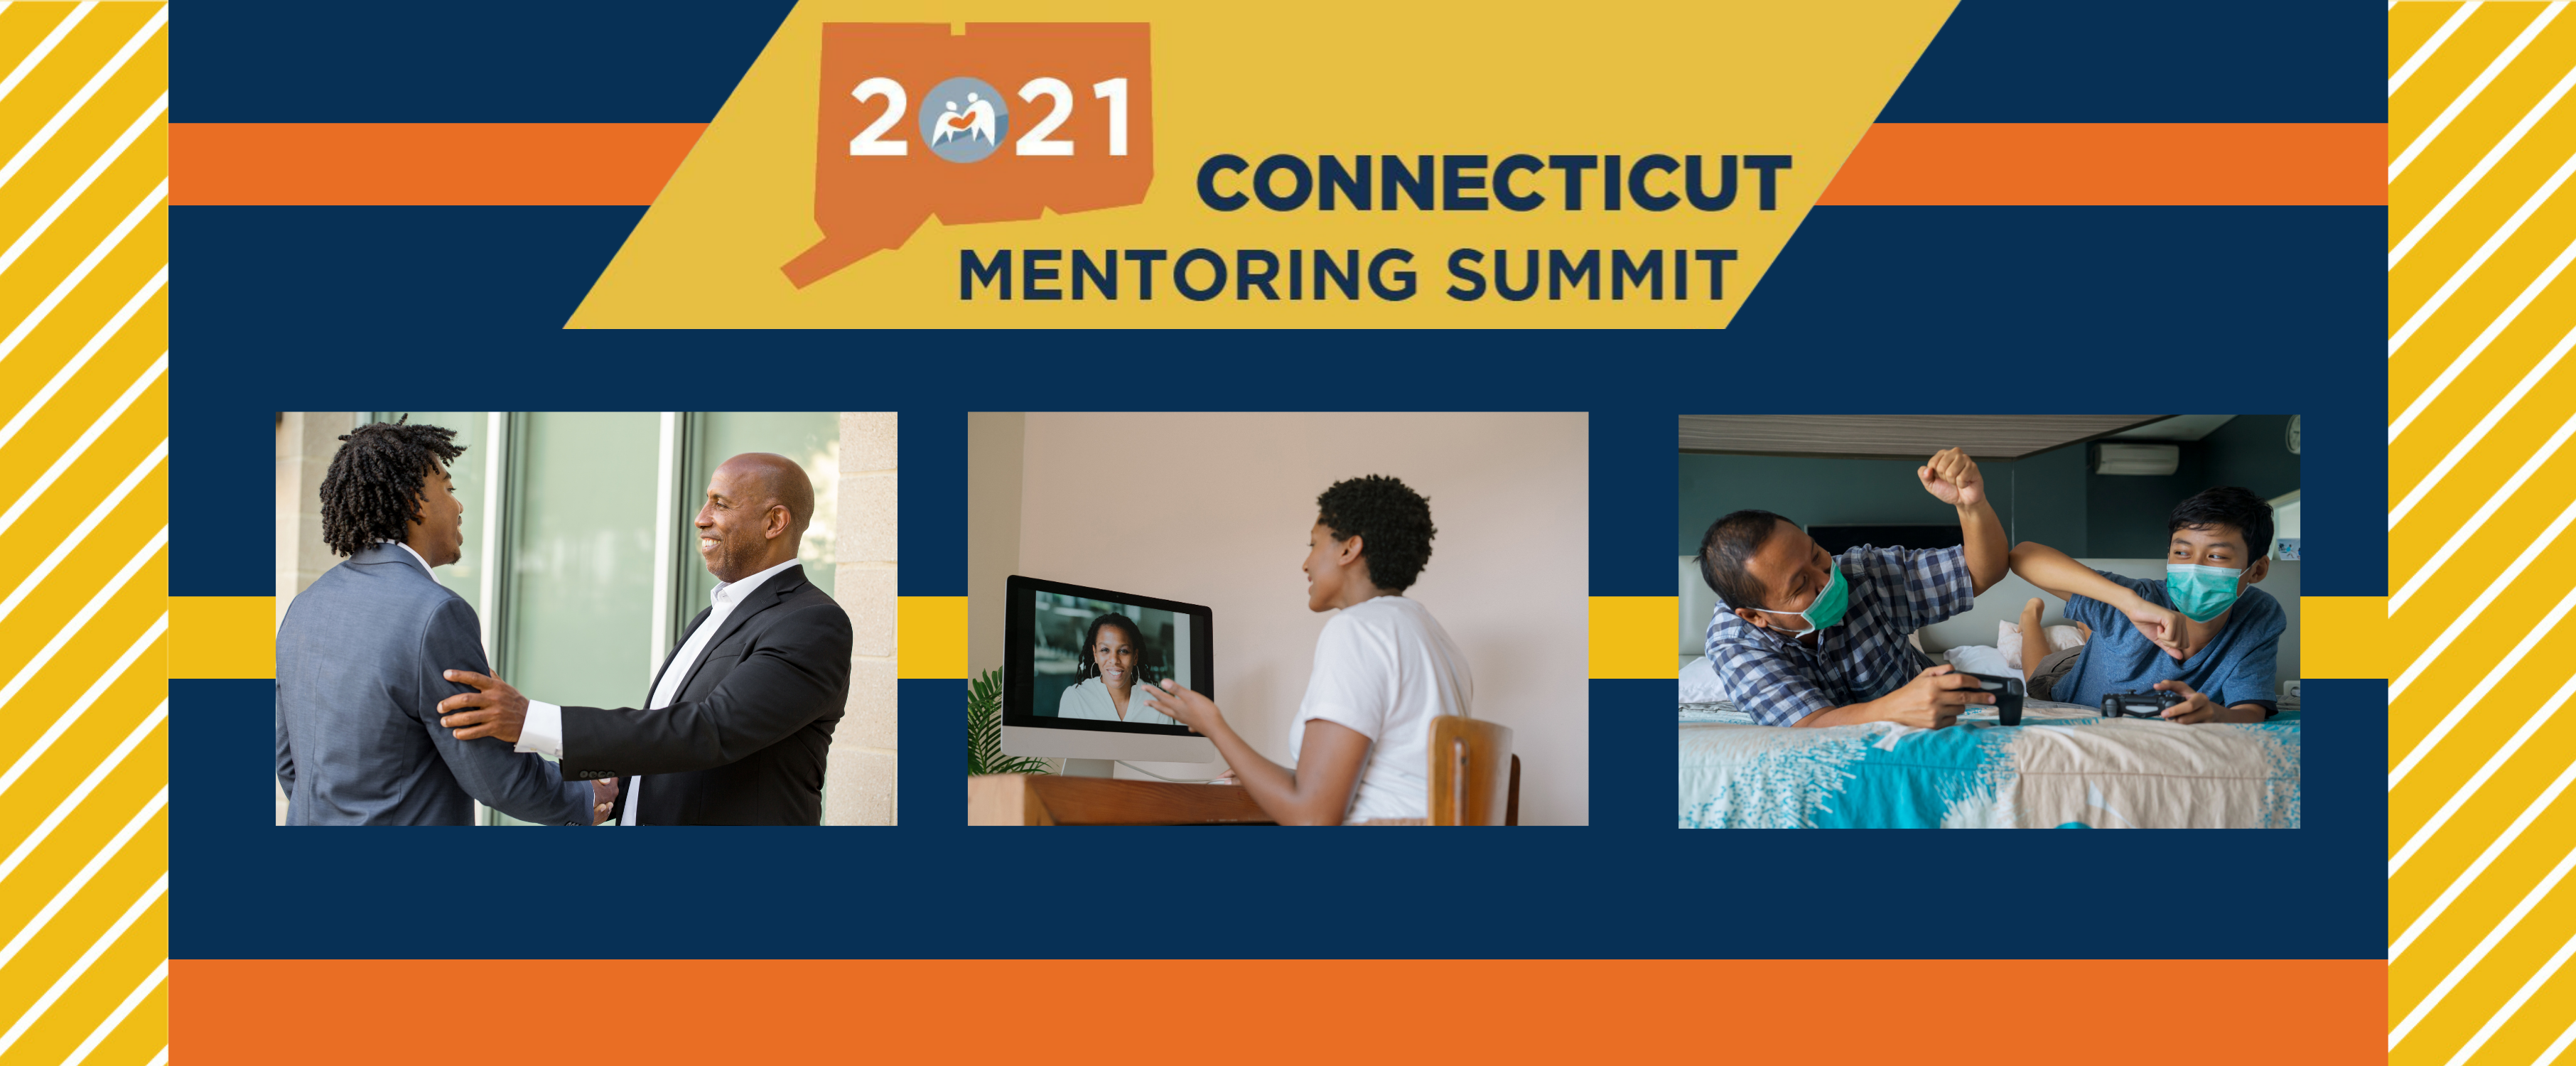 2021 CT Mentoring Summit